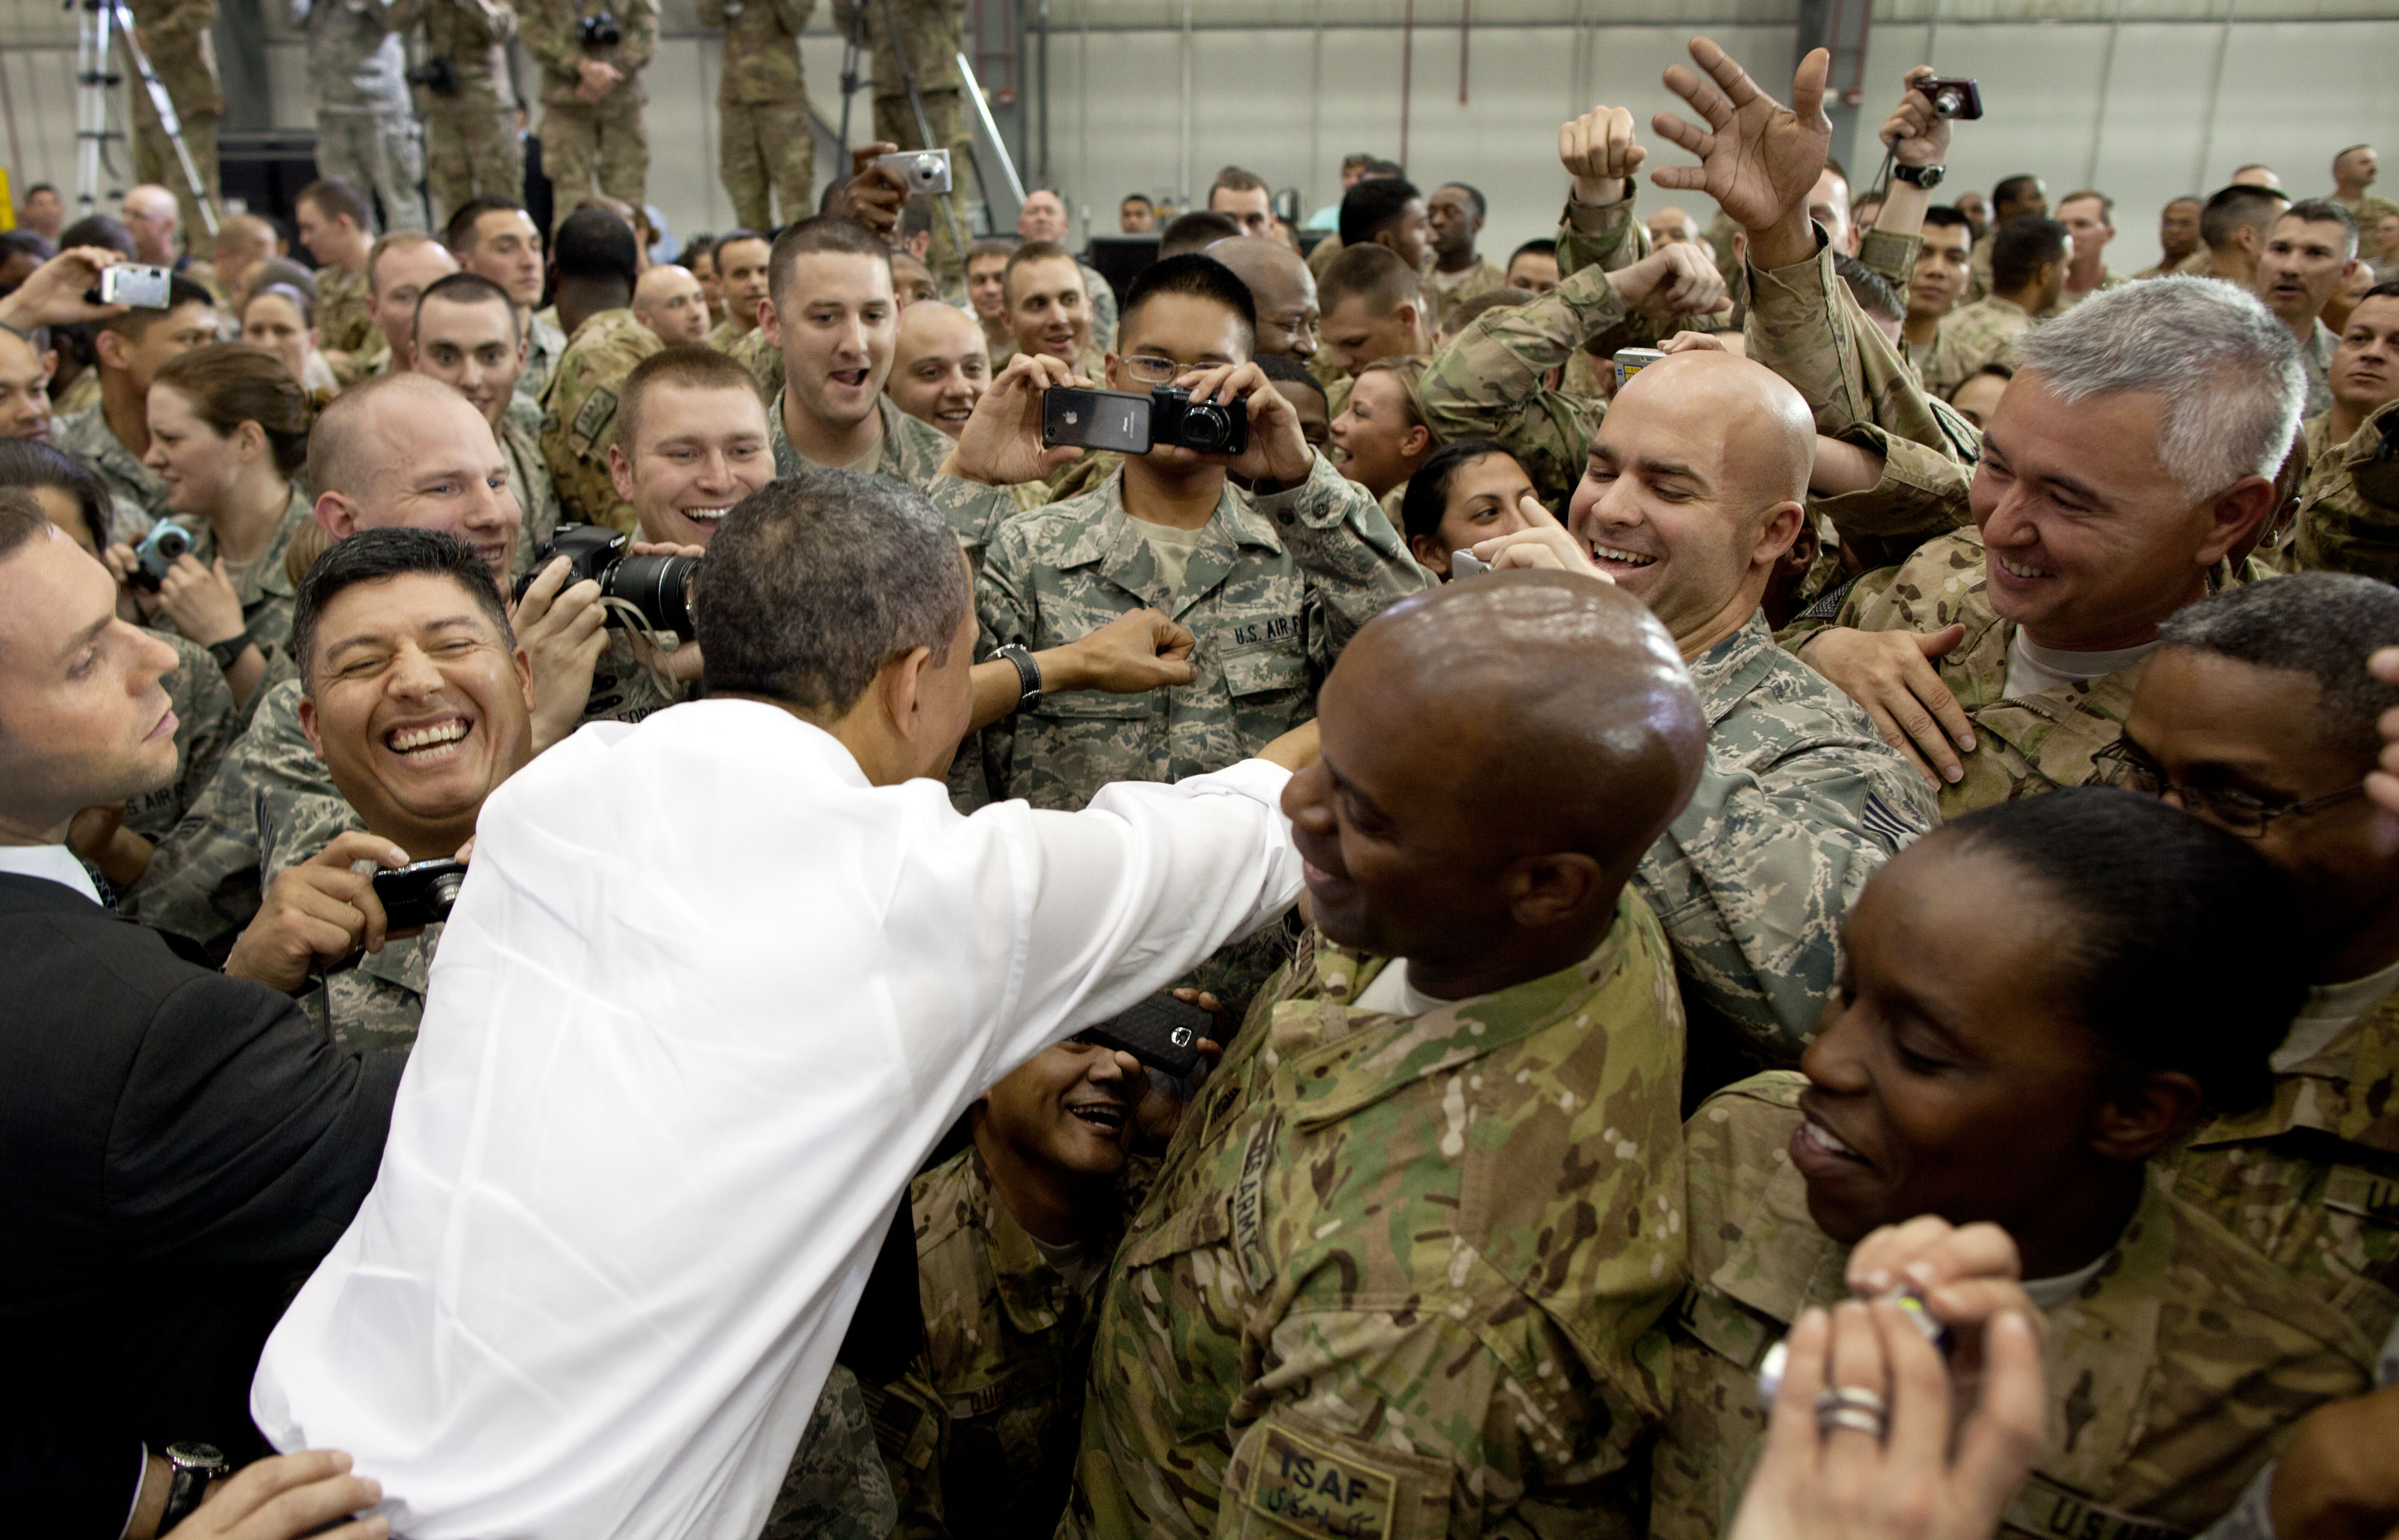 President Barack Obama greets U.S. troops at Bagram Air Field after a surprise visit to Afghanistan, May 1, 2012.